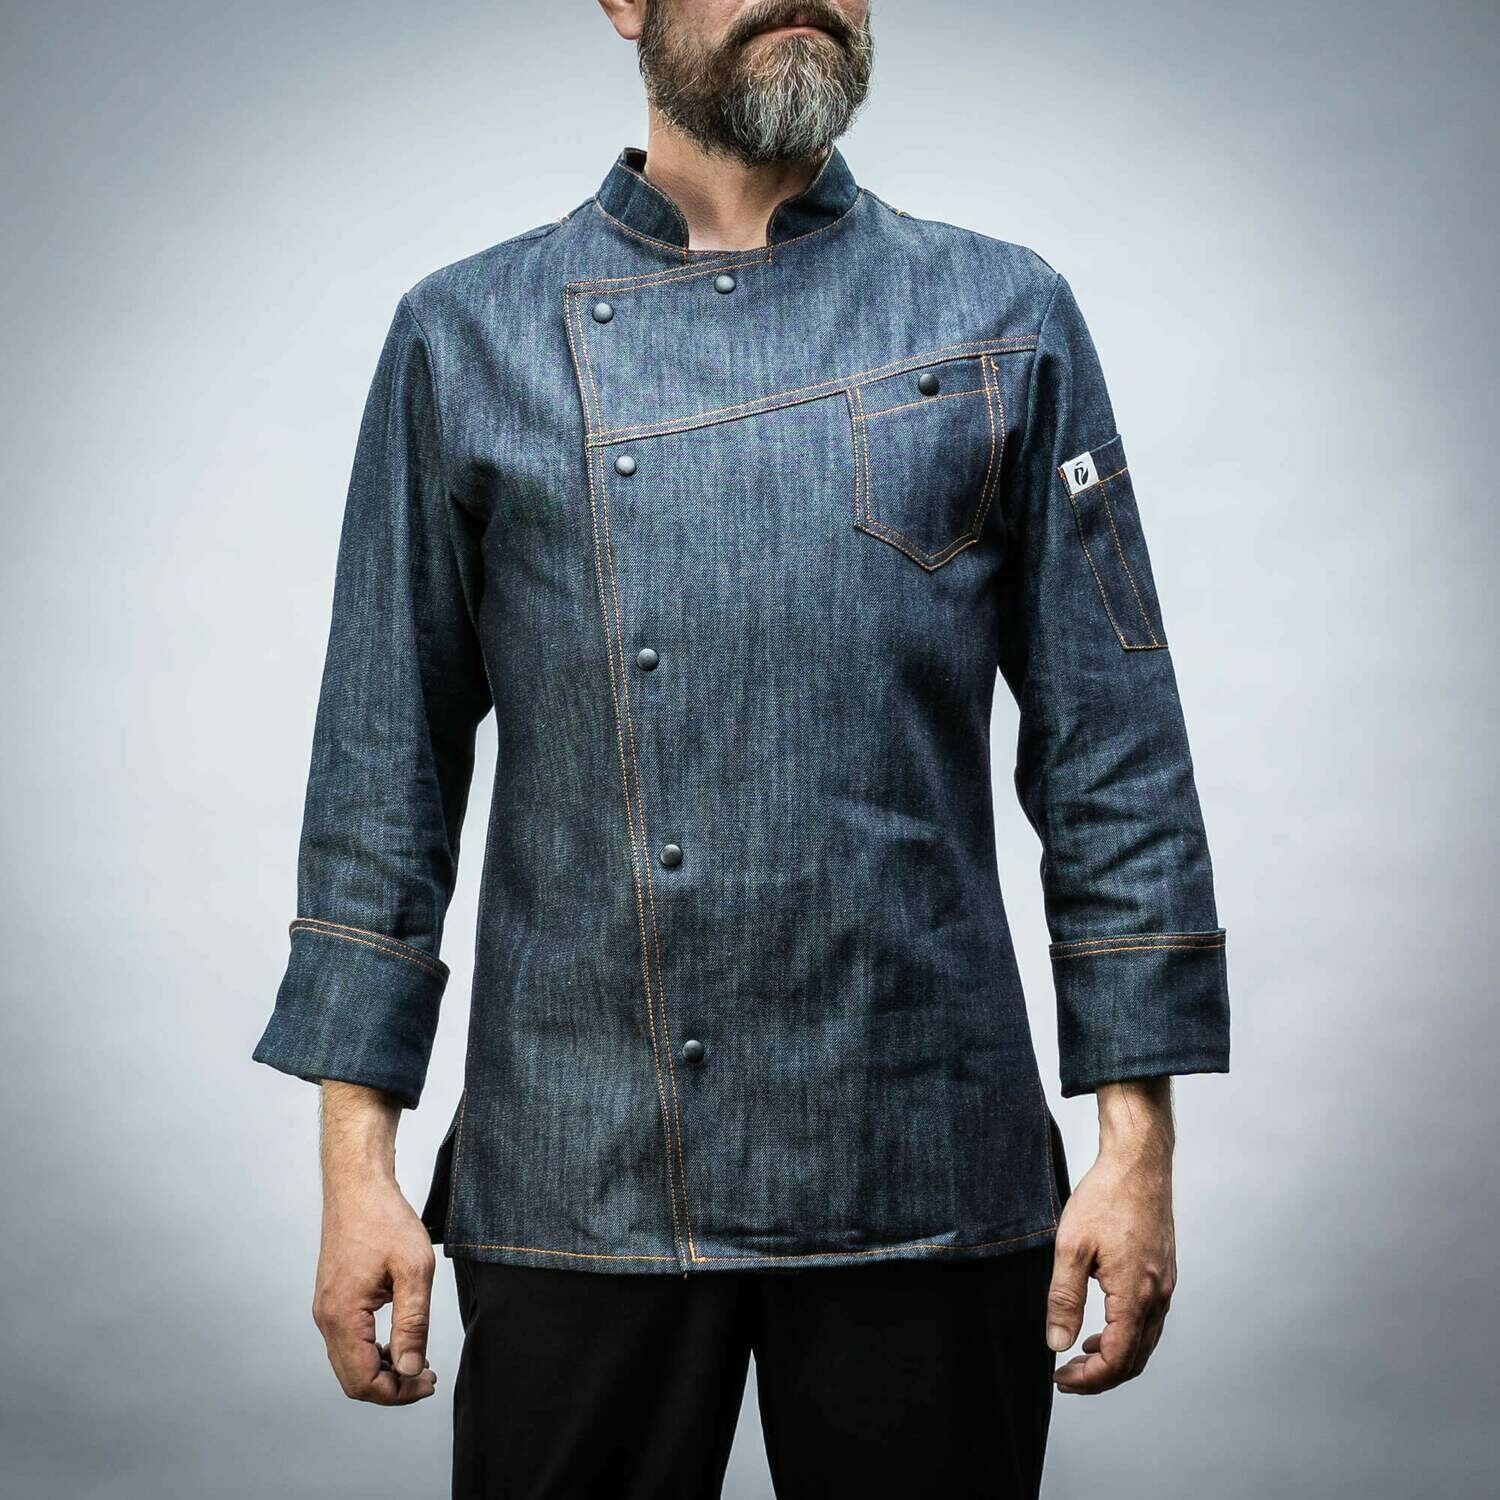 140JEANS - CHEF'S JACKET